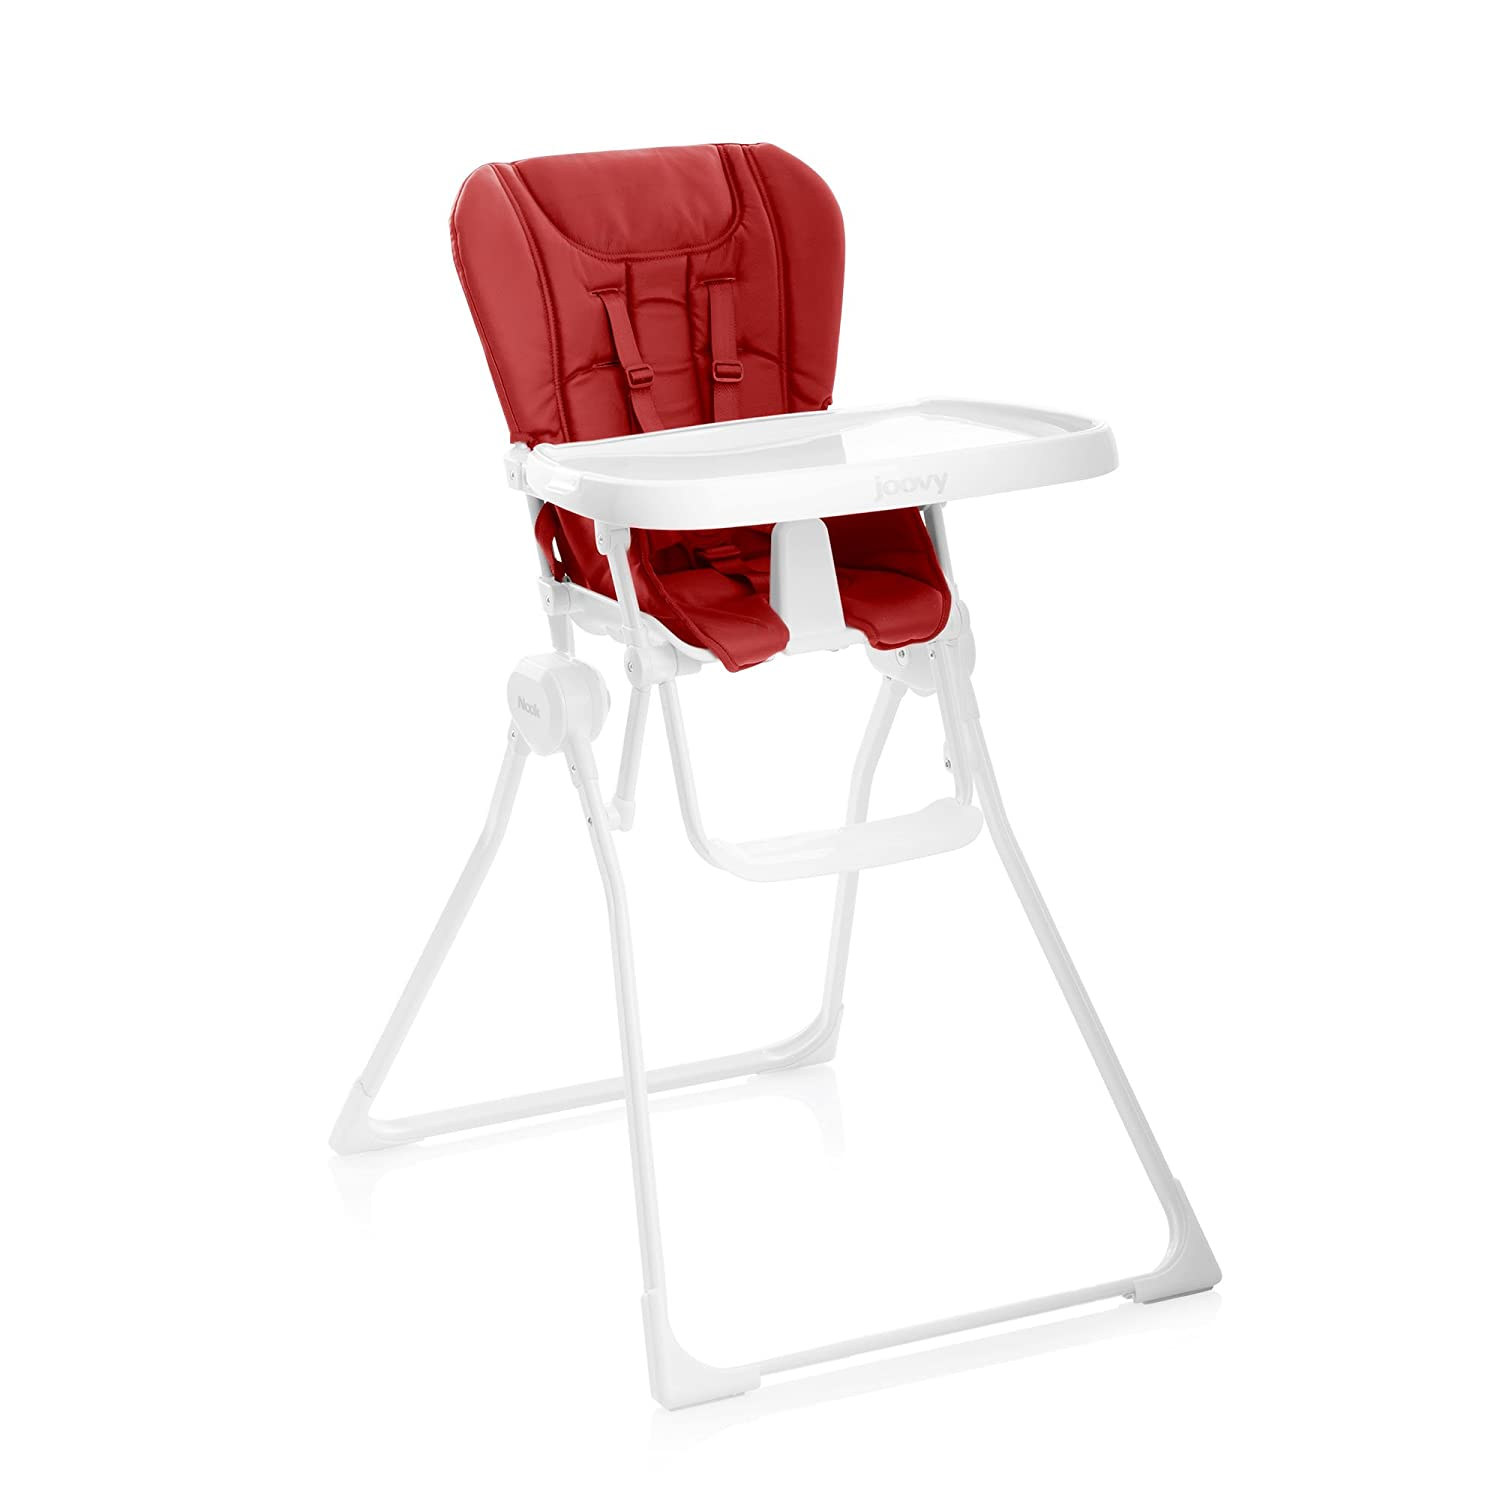 JOOVY Nook High Chair, Coral 2065